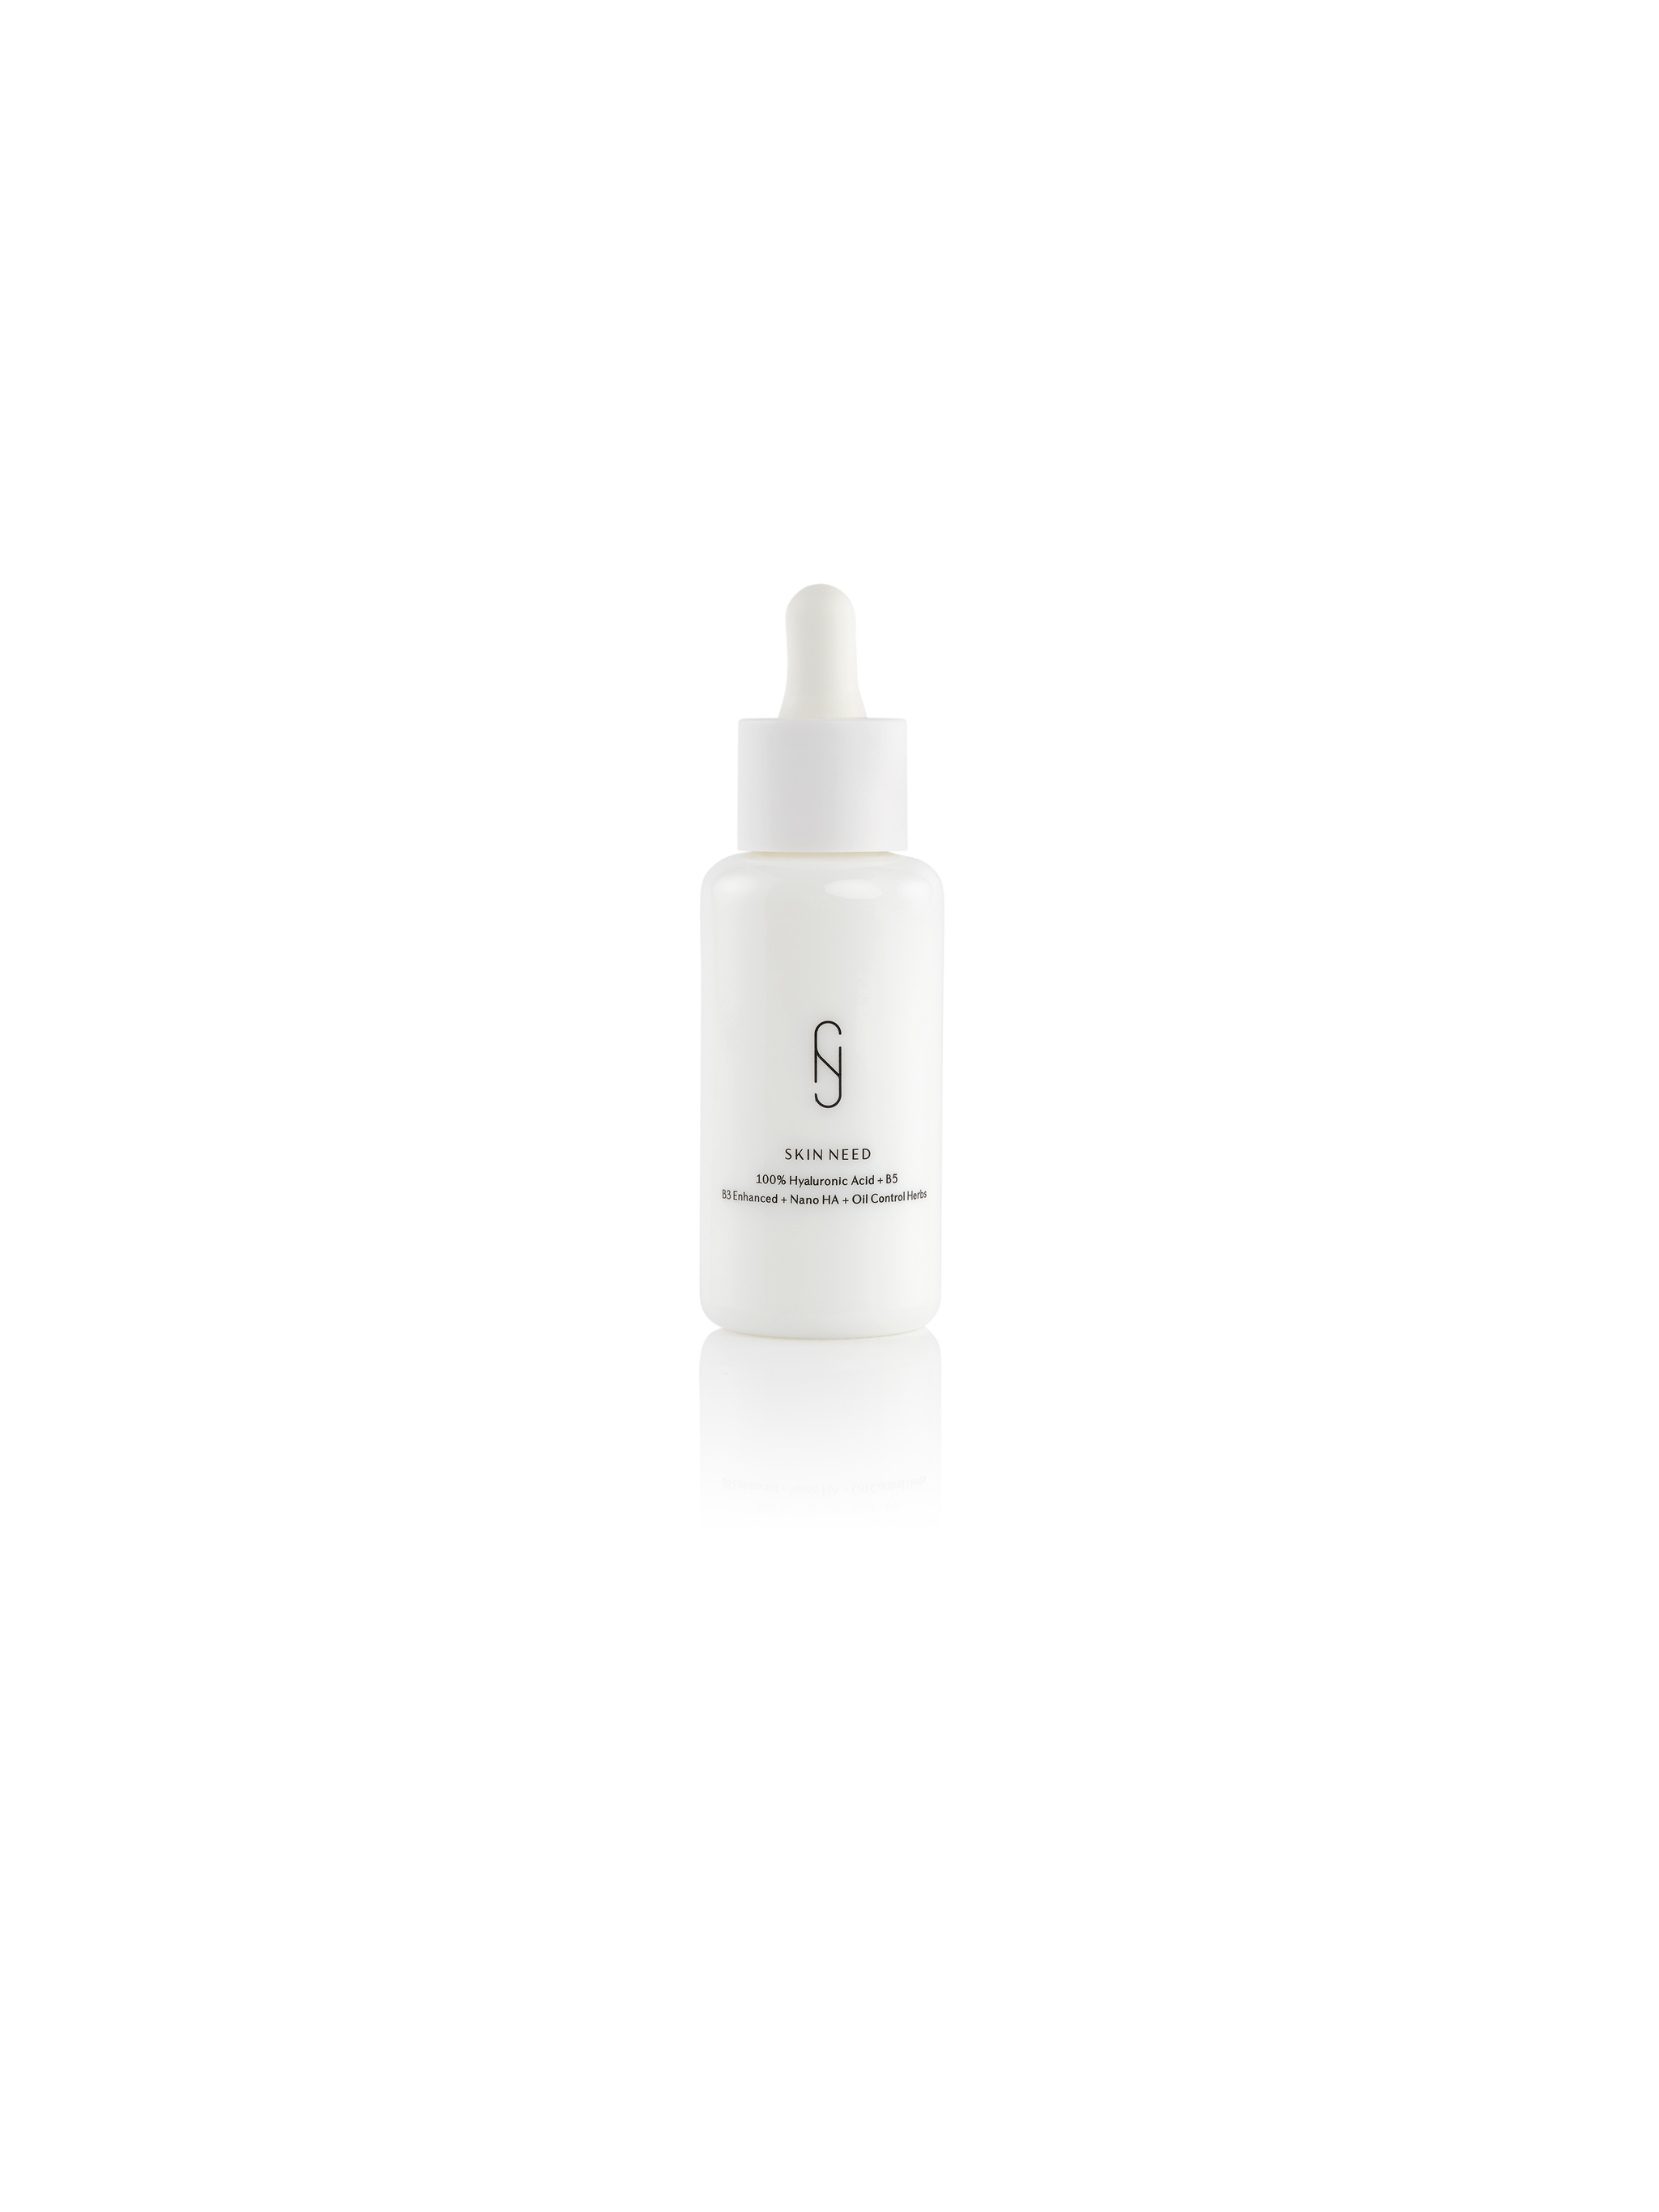 100% HYALURONIC ACID+B5 40mle